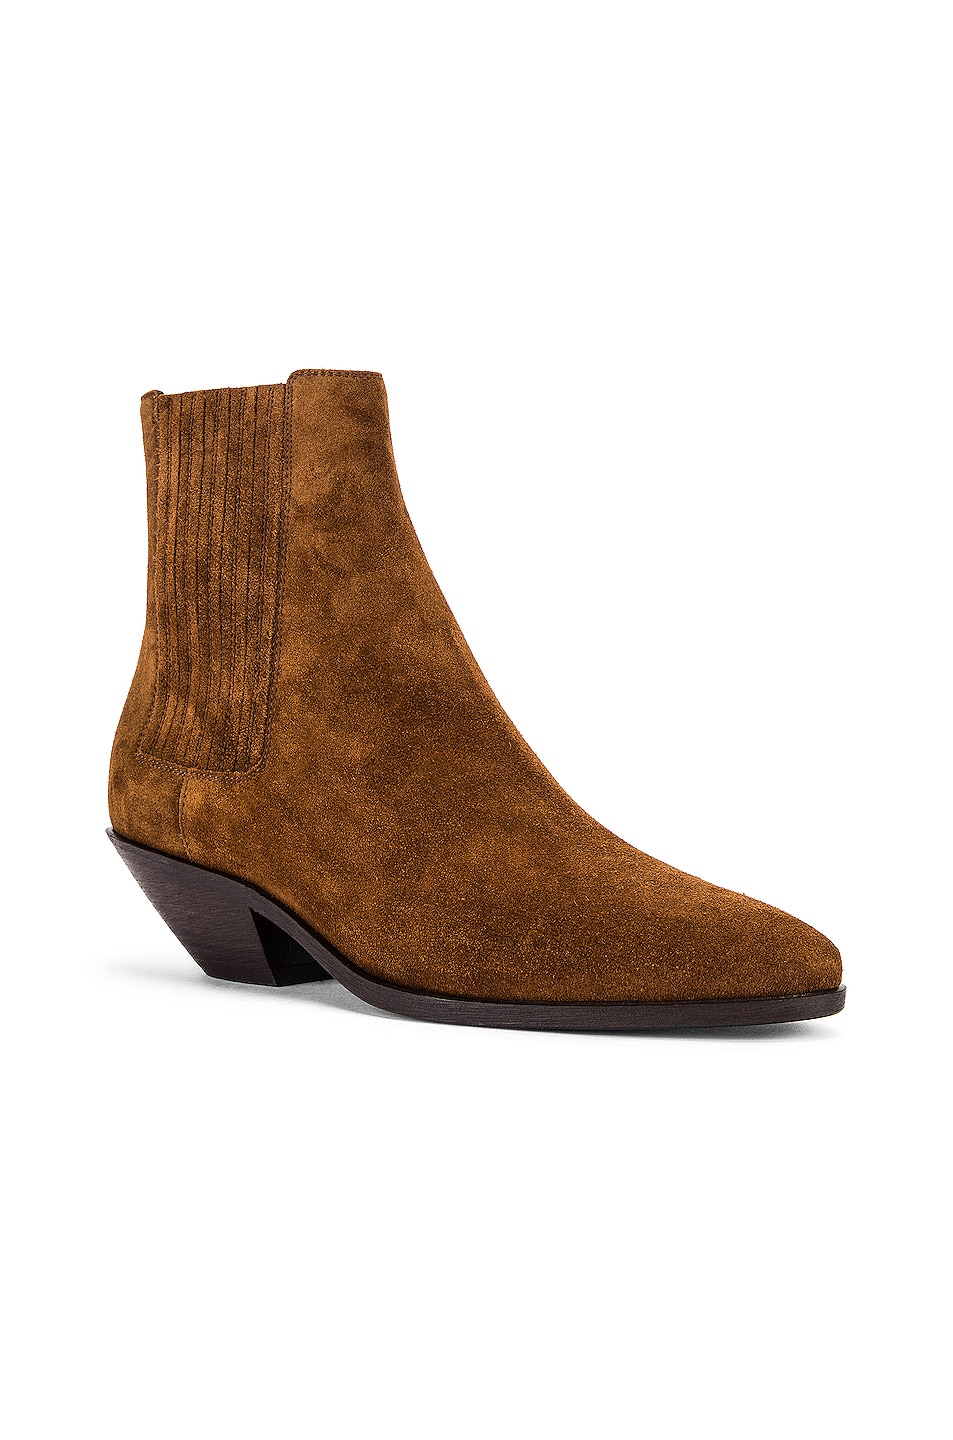 Image 2 of Saint Laurent West Chelsea Boots in Land